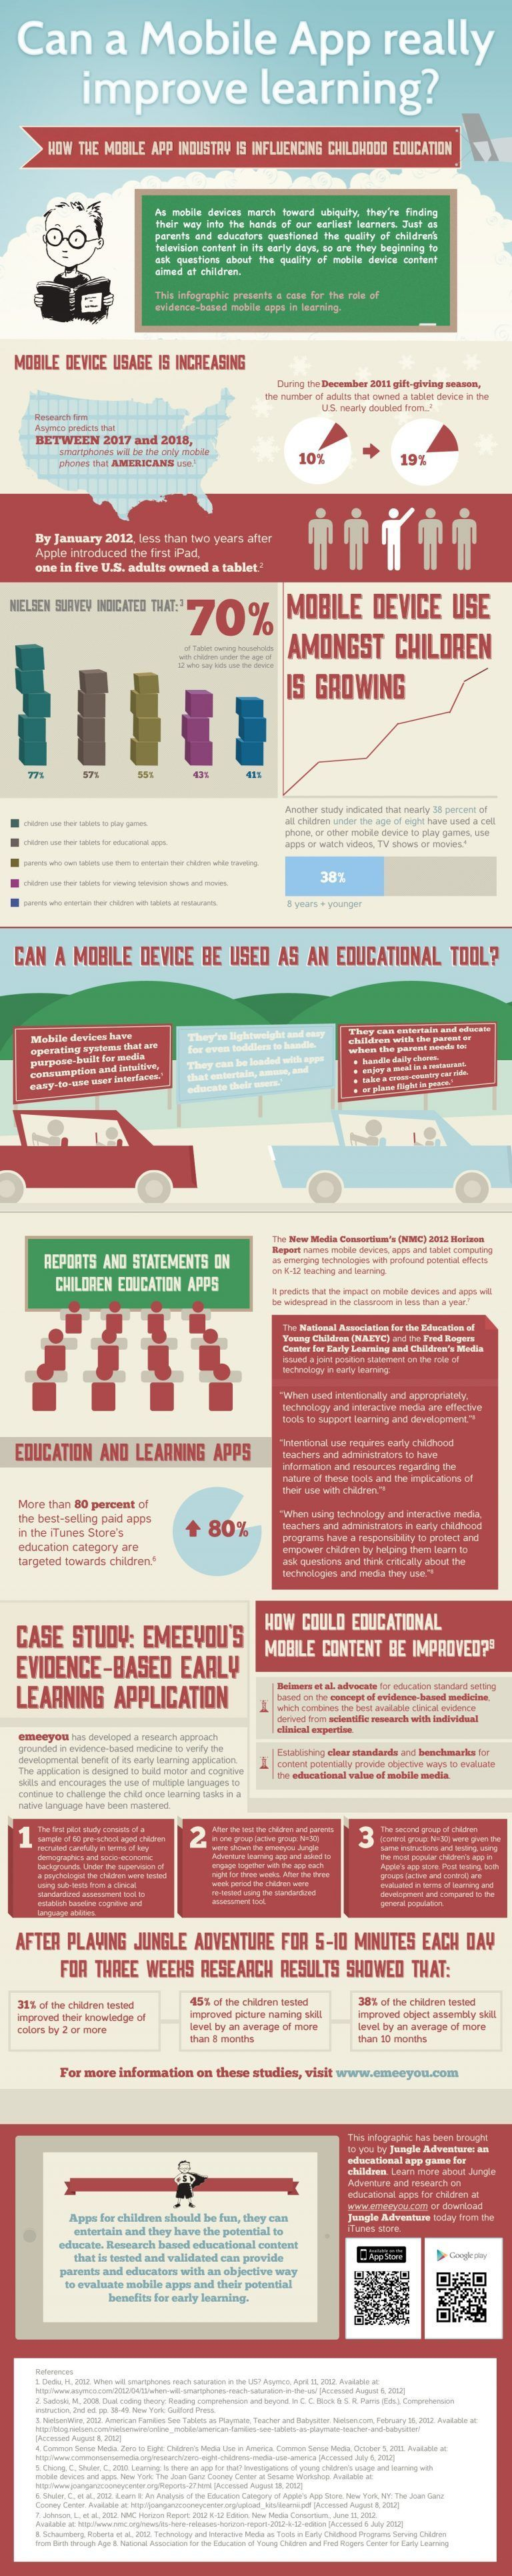 Can An Educational Mobile App Improve Childhood Education? - Infographic